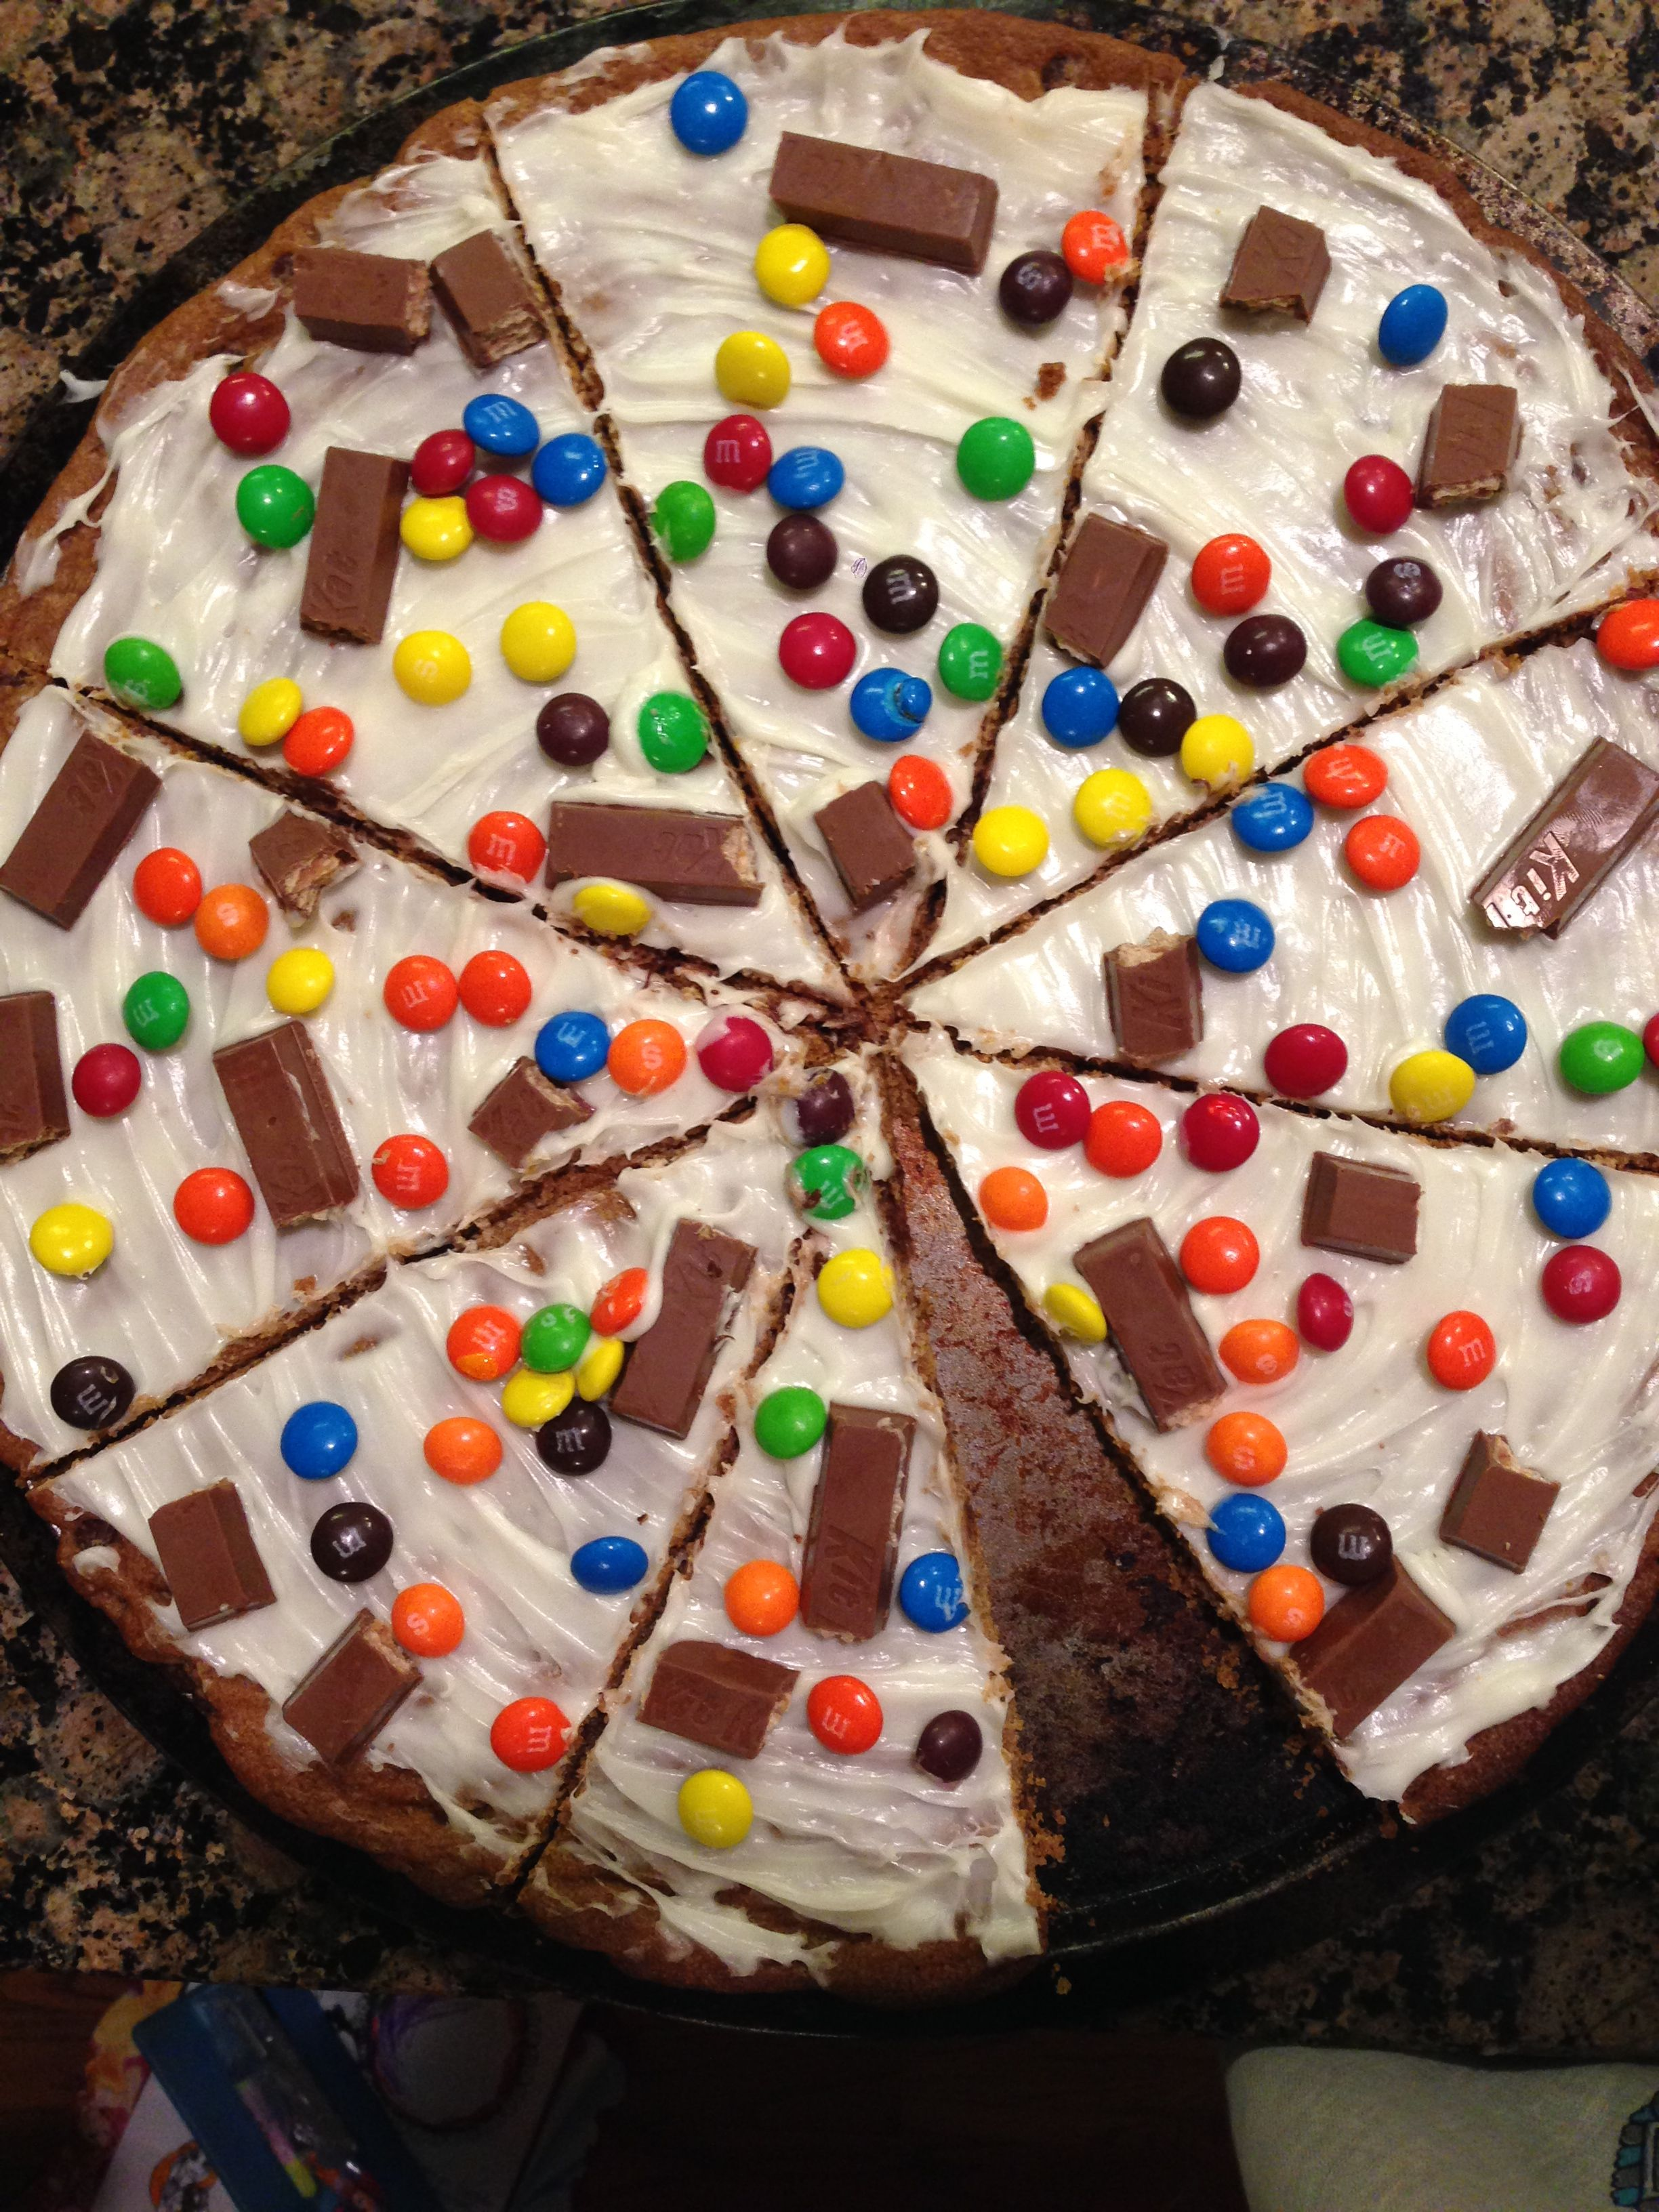 A homemade candy pizza made by my amazing cousin With the crust